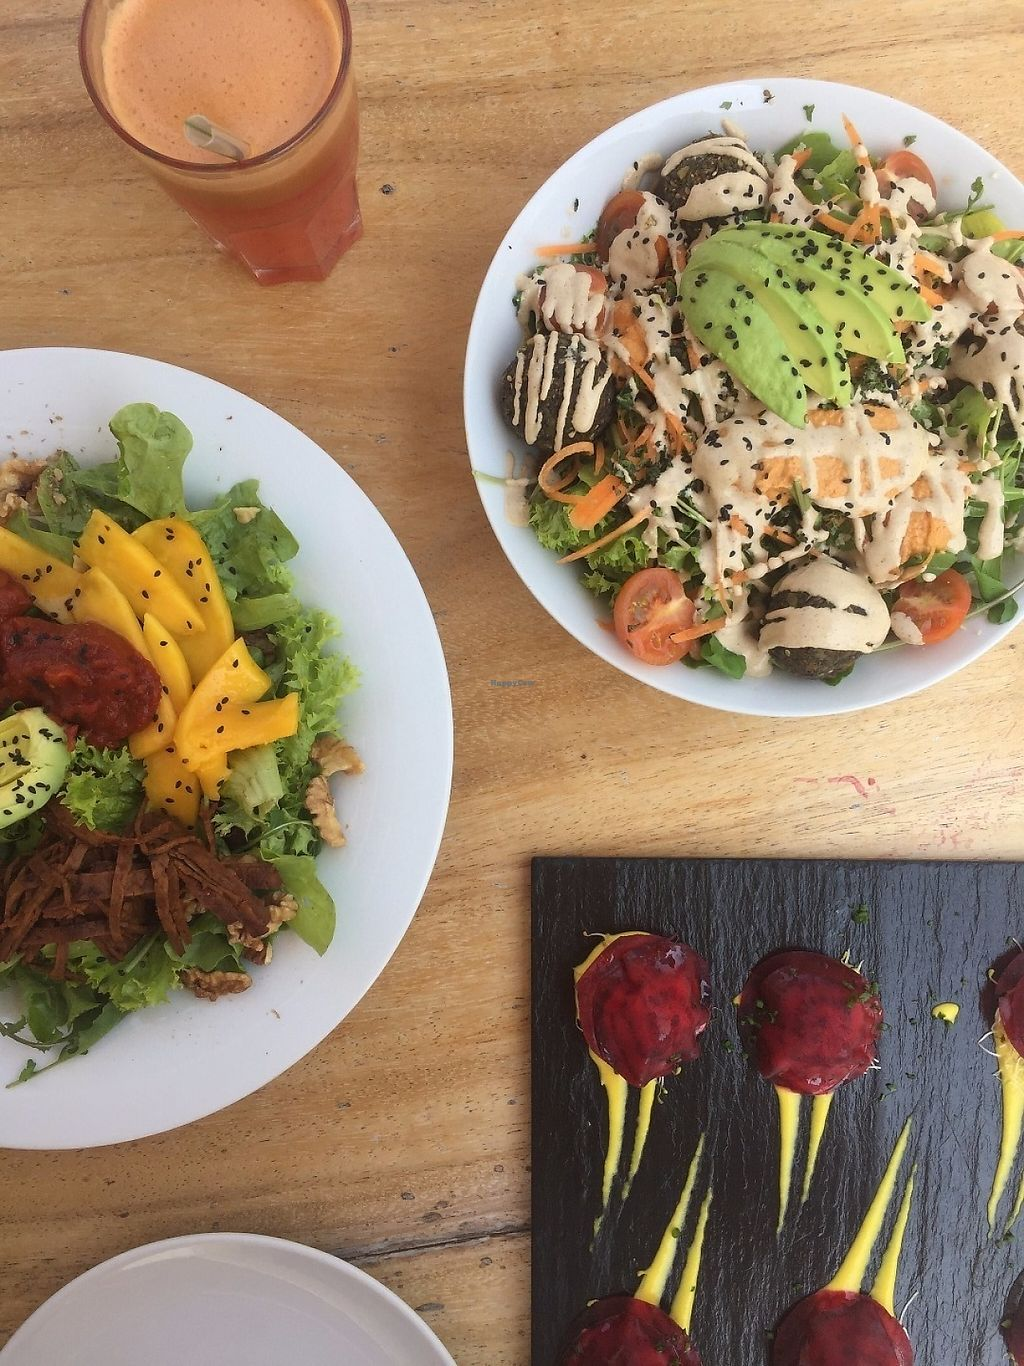 """Photo of Wild Beets  by <a href=""""/members/profile/Yiselle"""">Yiselle</a> <br/>Falafel salad Mango salad Beetroot ravioli <br/> May 8, 2017  - <a href='/contact/abuse/image/50355/257079'>Report</a>"""